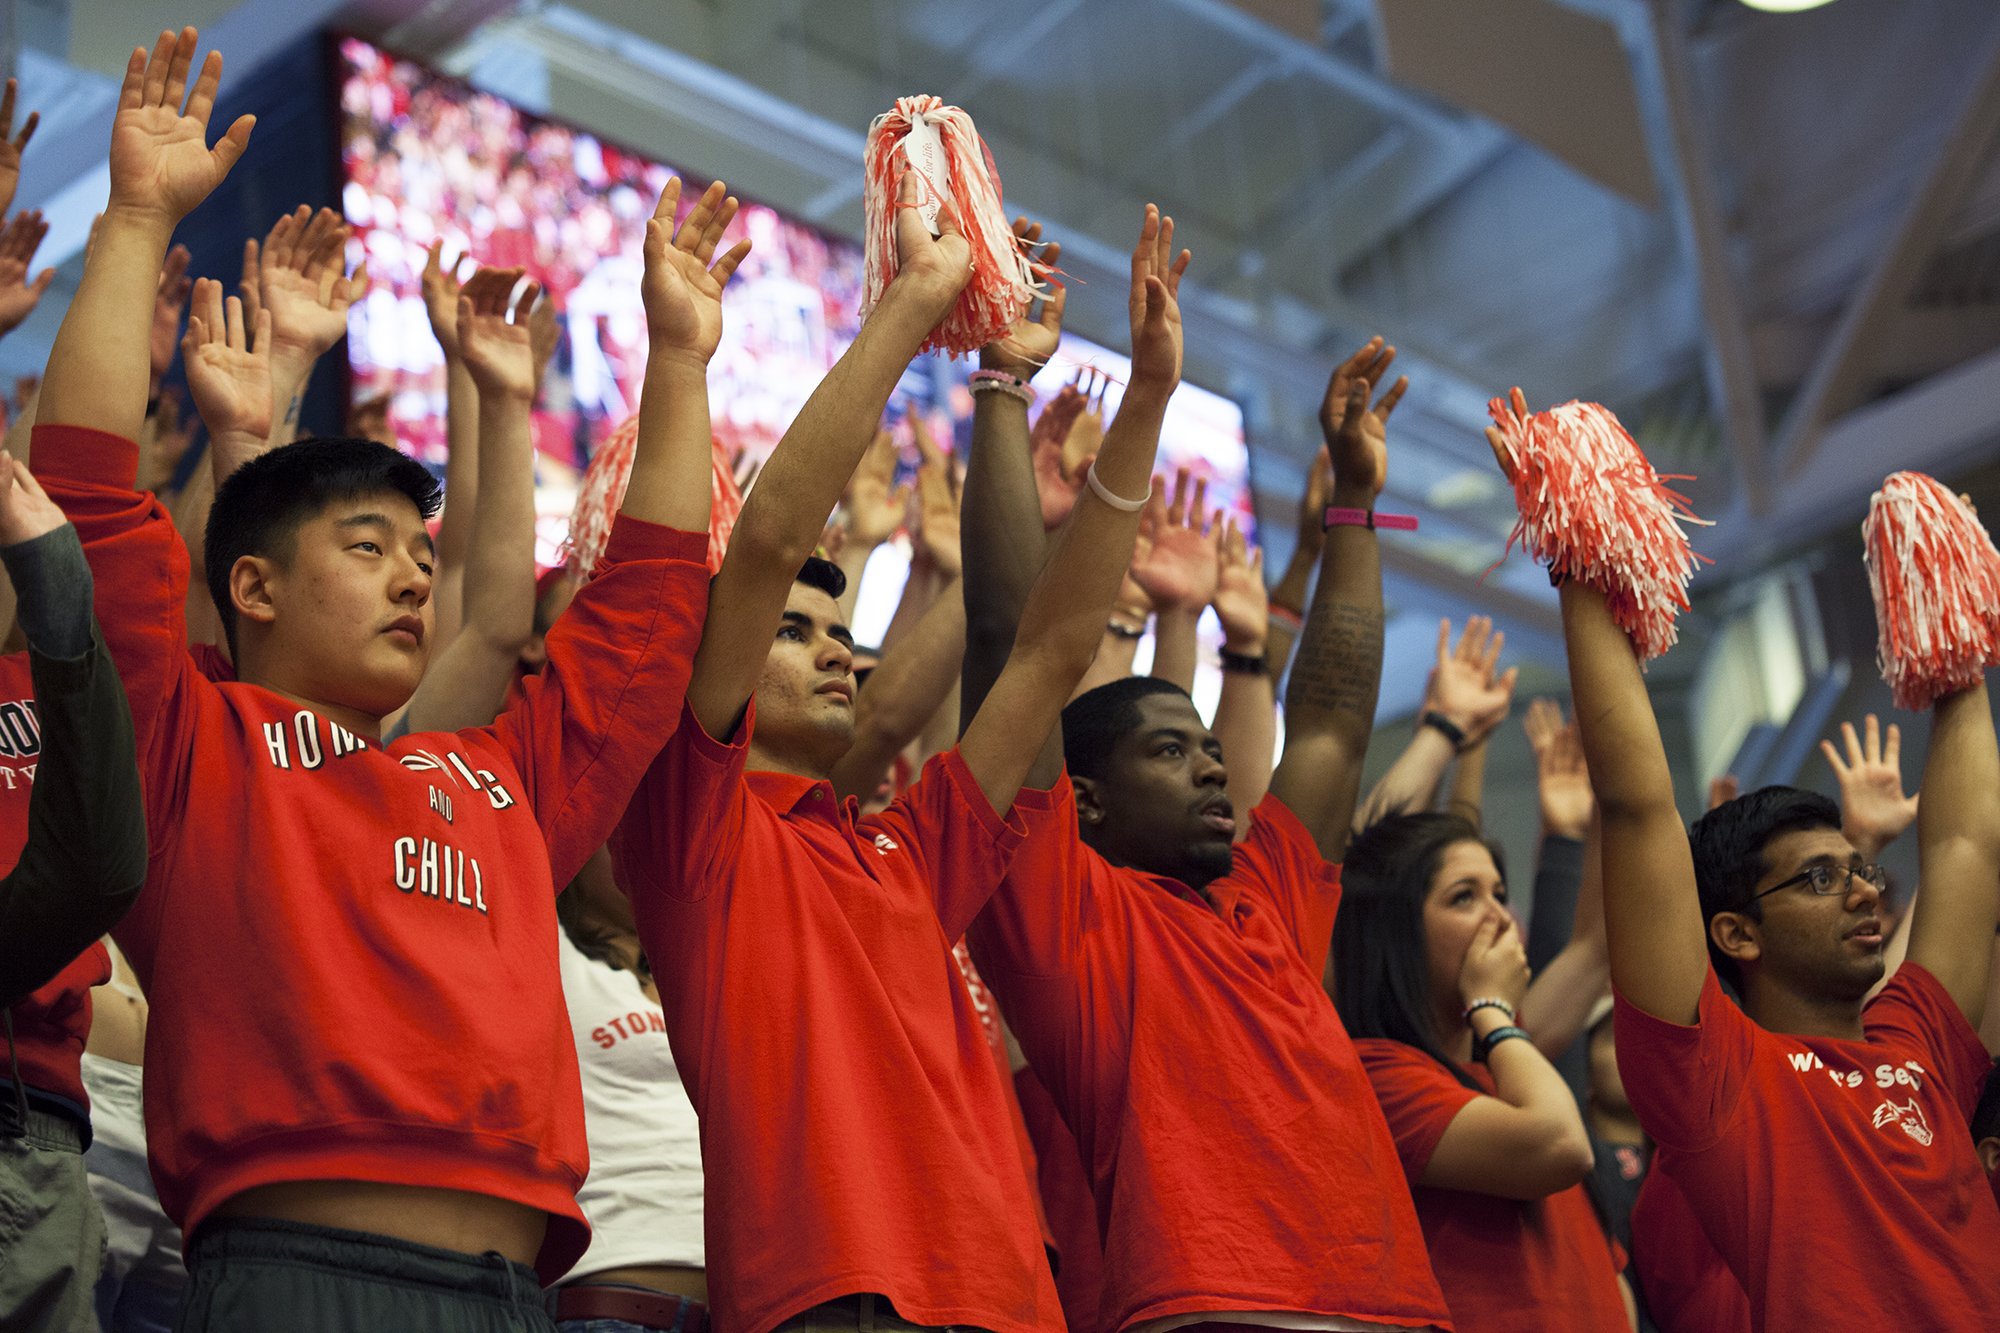 Stony Brook fans silently hold their arms up in support of senior guard Carson Puriefoy as he takes a free throw shot. CHRISTOPHER CAMERON/THE STATESMAN